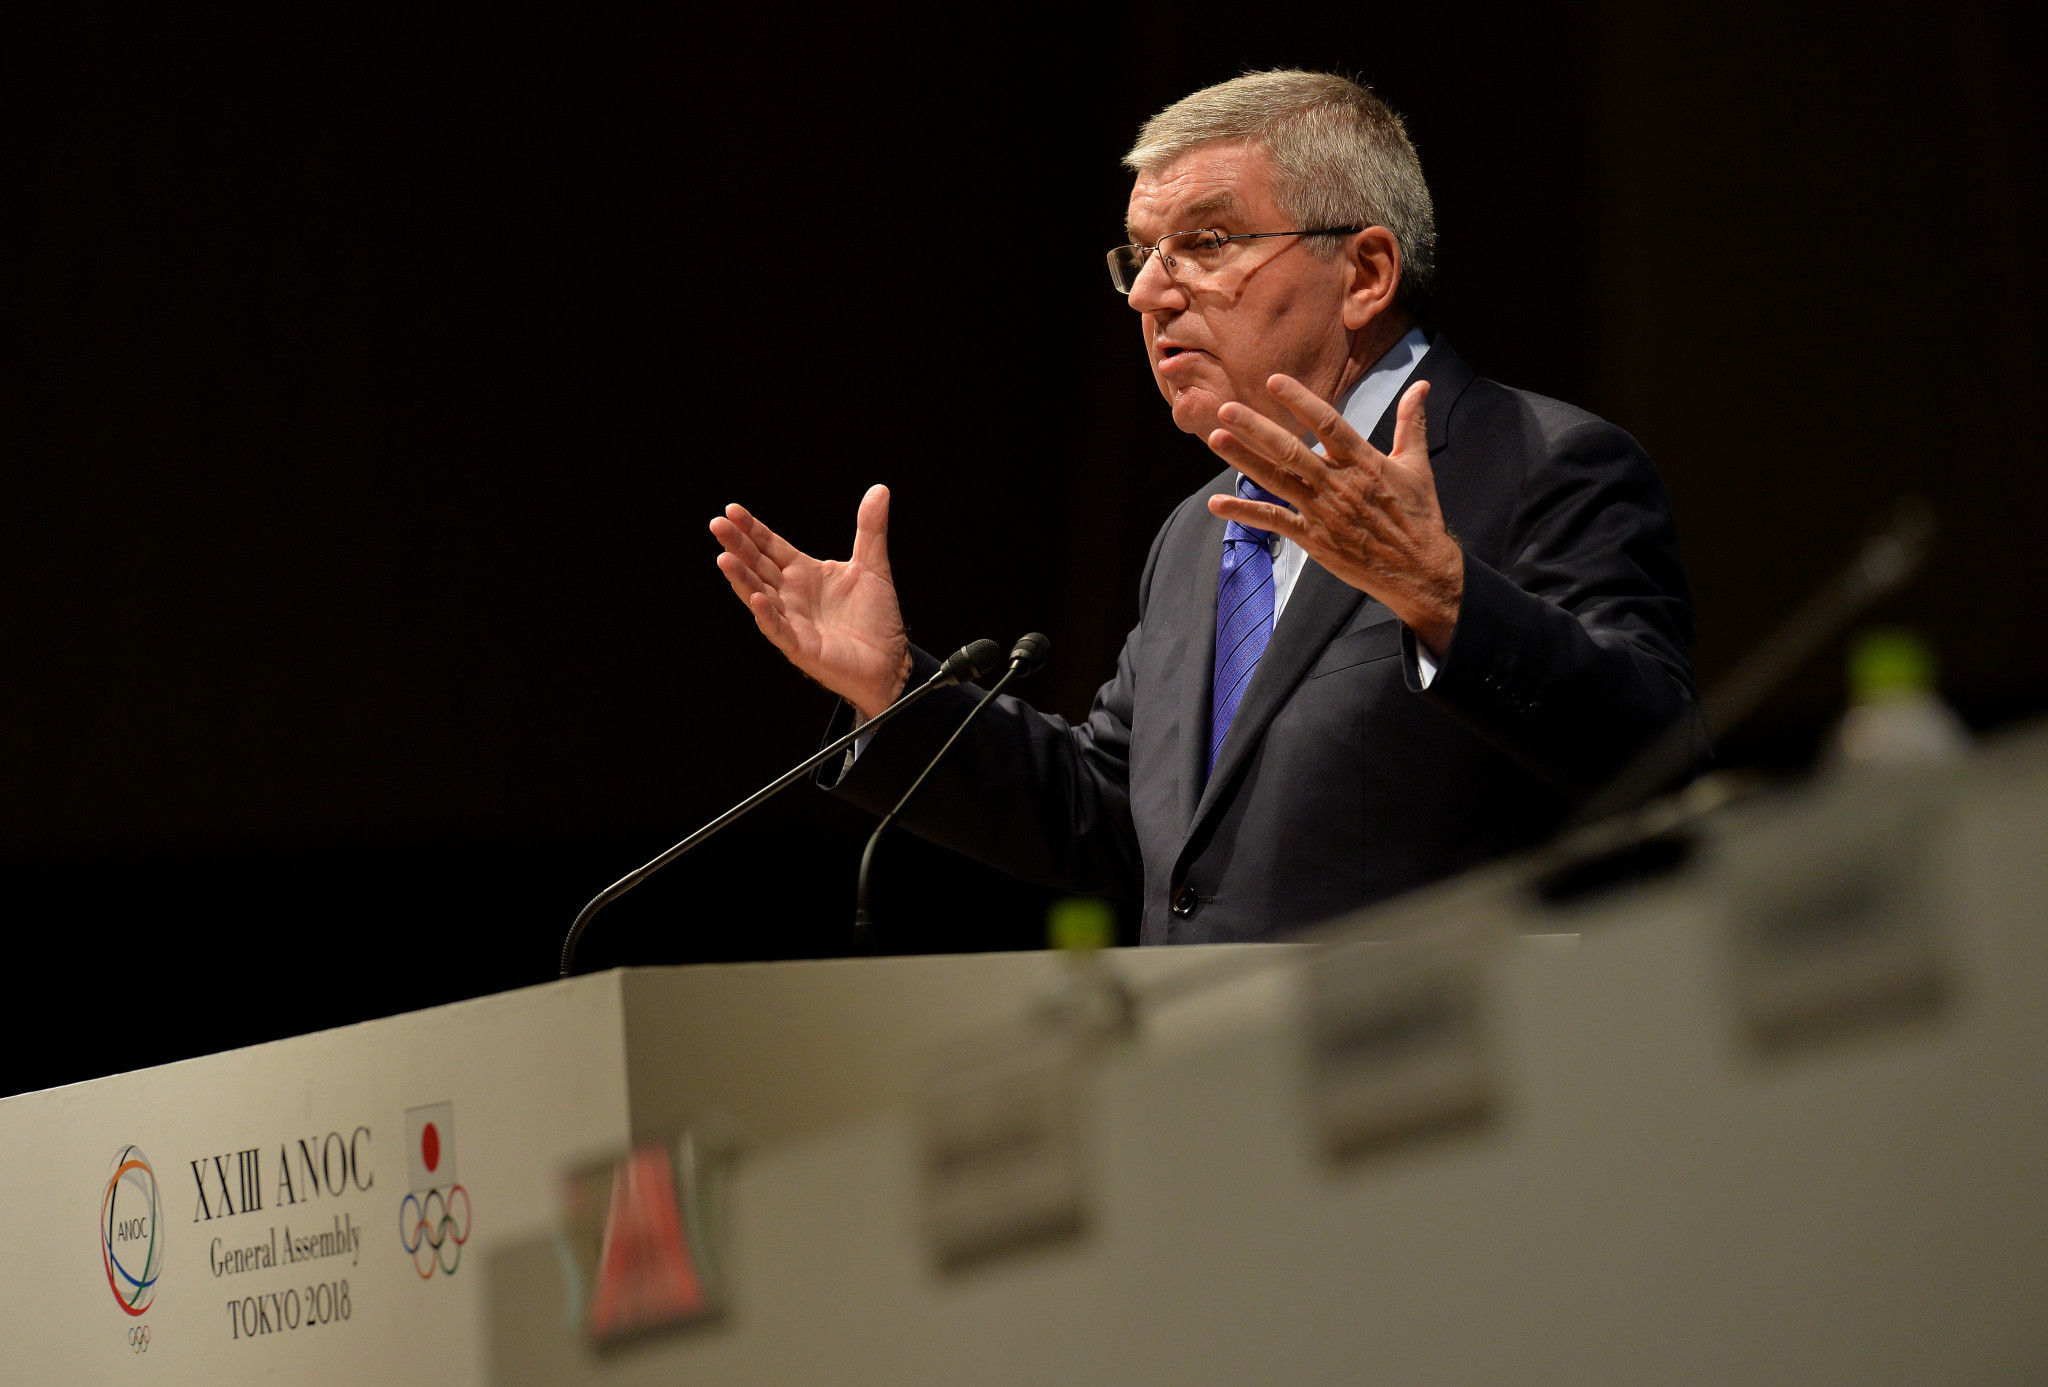 IOC President Thomas Bach gave a keynote speech on the second day of the ANOC General Assembly ©Getty Images